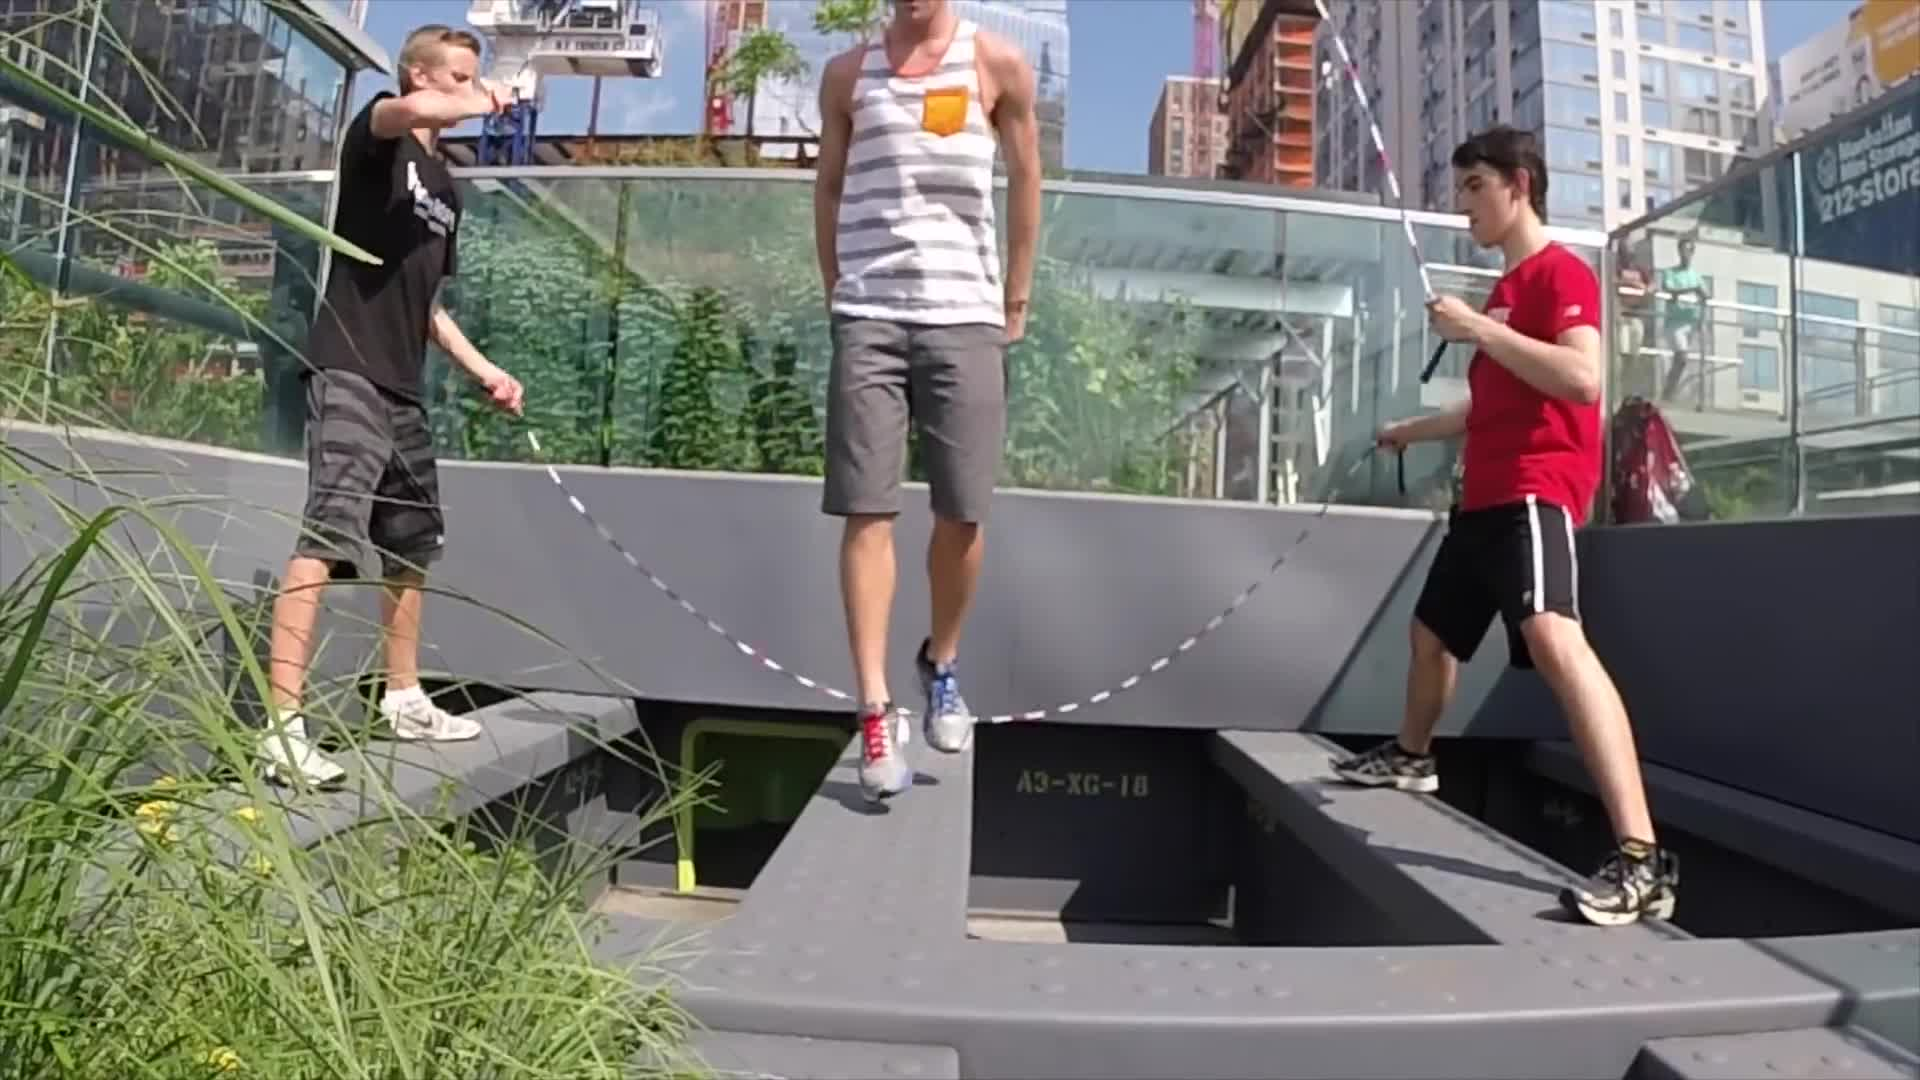 #athletic, #breakdance, #crossfit, #dance, #jump, #jumprope, #newyork, #newyorkcity, #rope, #wejumprope, double dutch, jump rope, sports, New York City Jump Rope GIFs